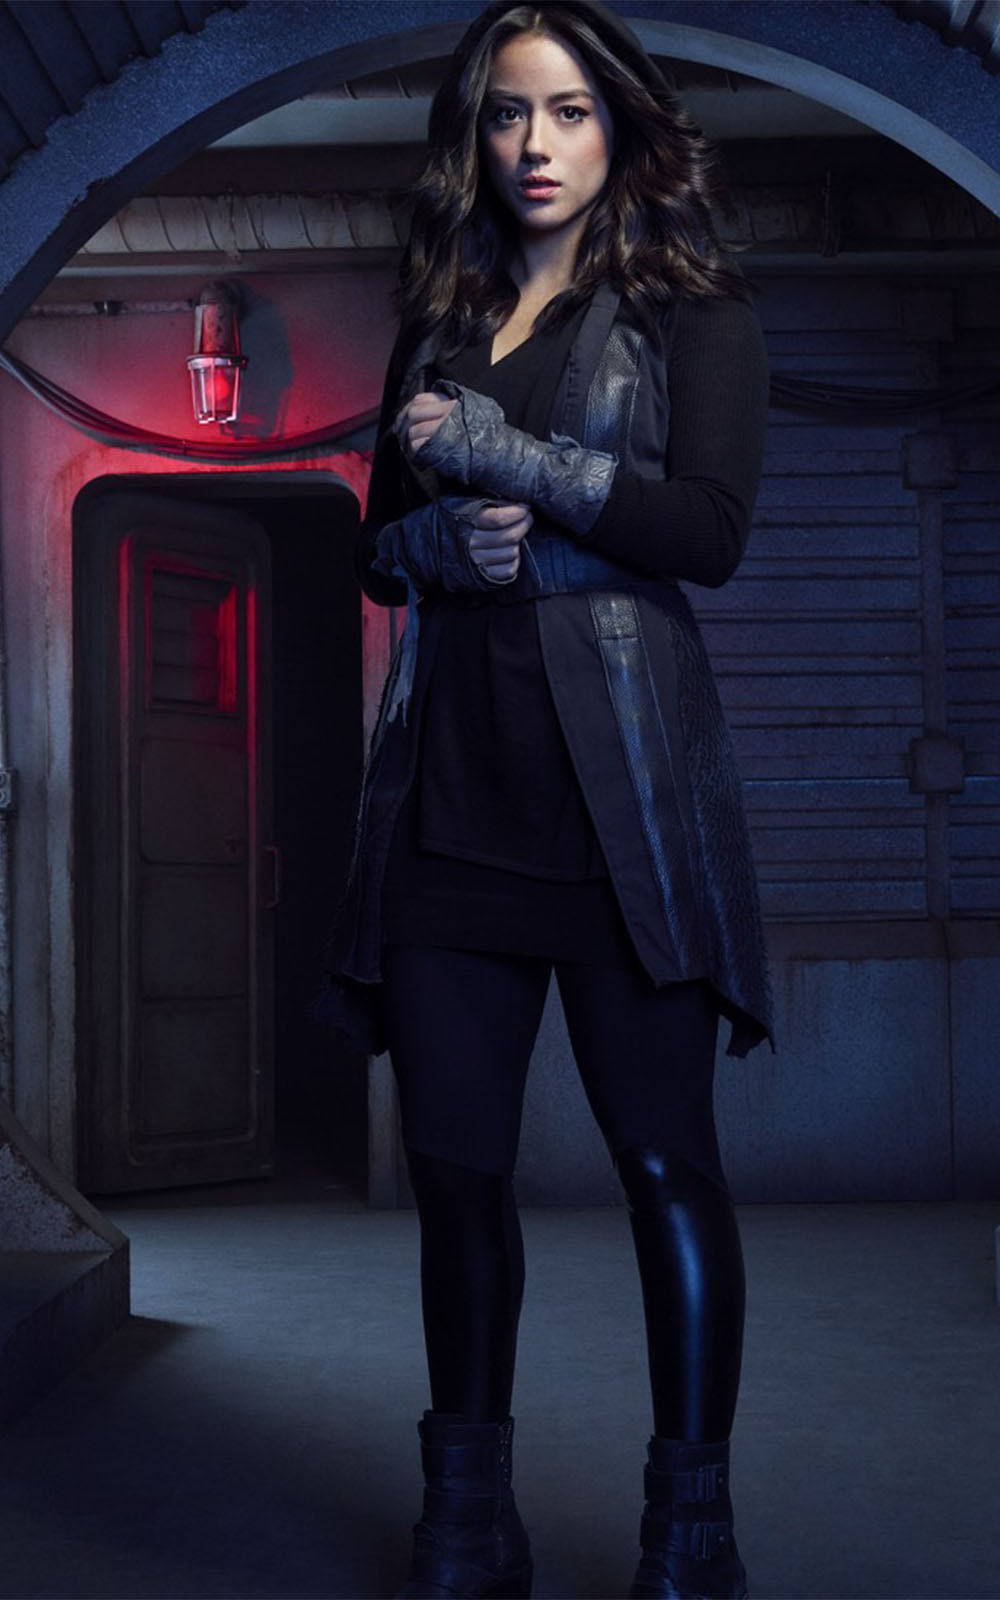 Pubg 4k Wallpapers Download For Pc Download Daisy Johnson In Agents Of Shield Season 5 Free